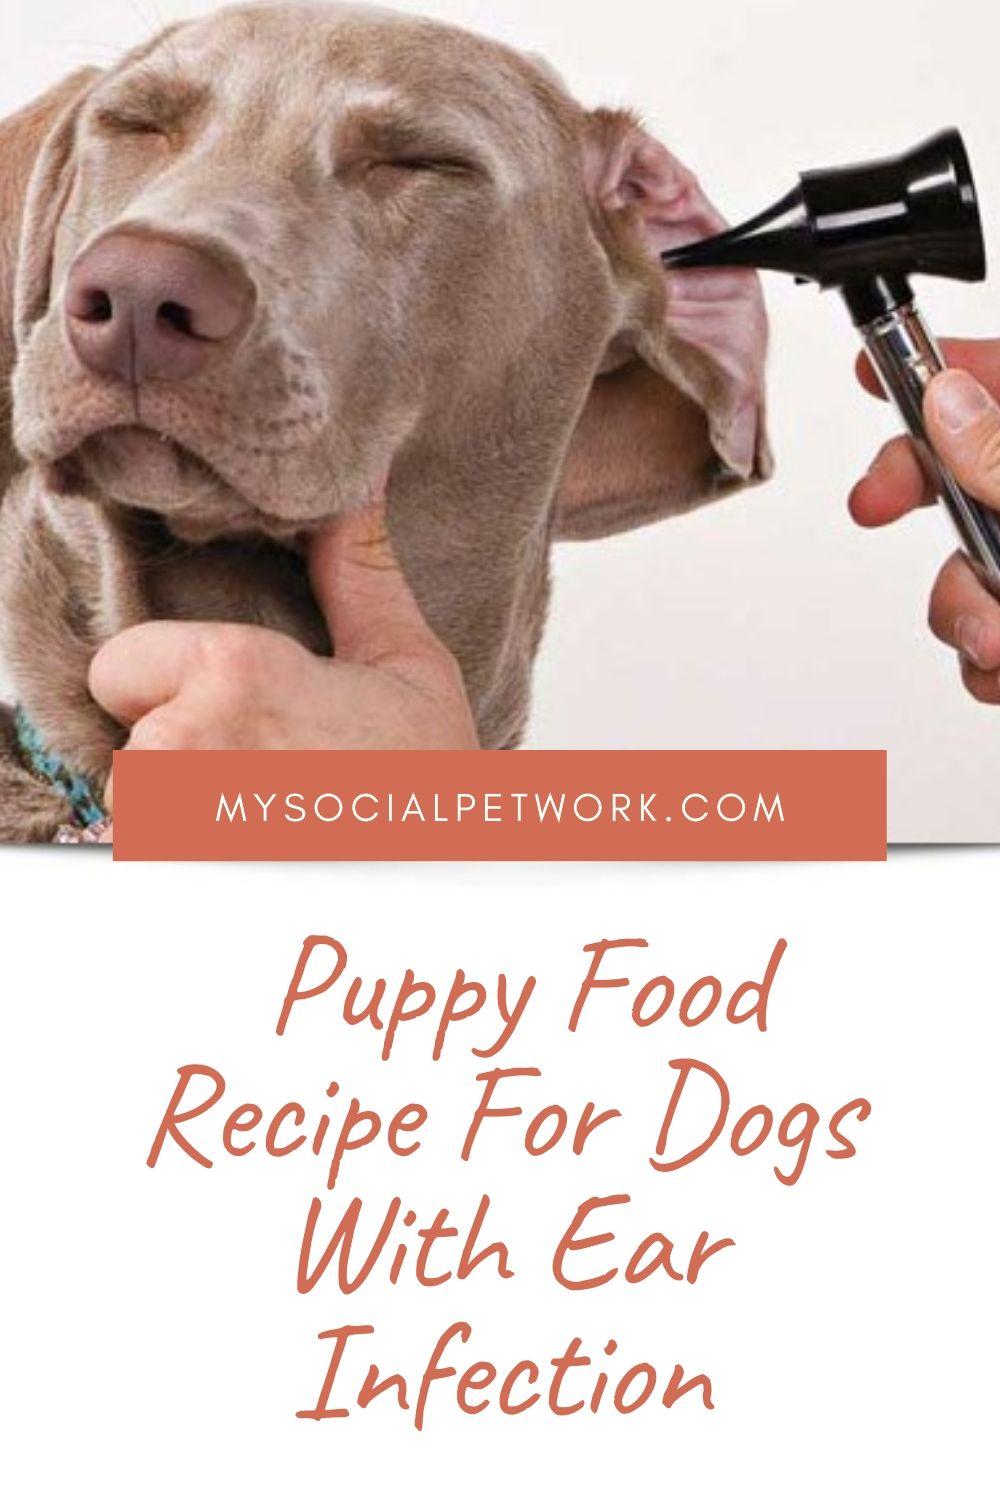 puppy-food-recipe-for-dogs-with-ear-infection-7317434